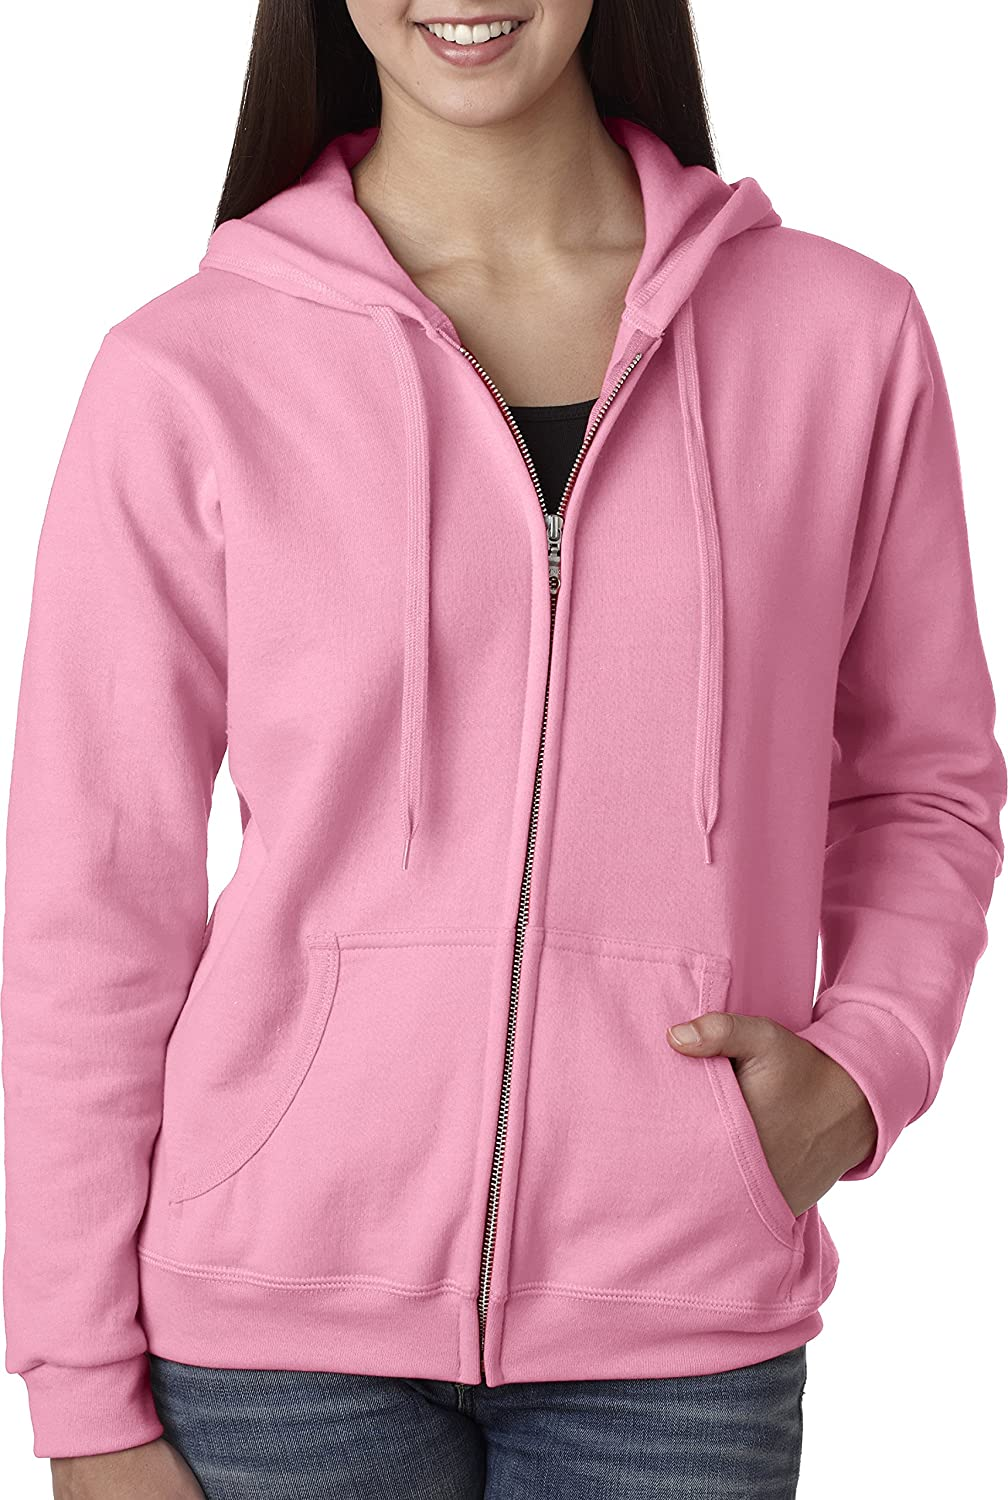 Shop for and buy womens sweatshirts online at Macy's. Find womens sweatshirts at Macy's.